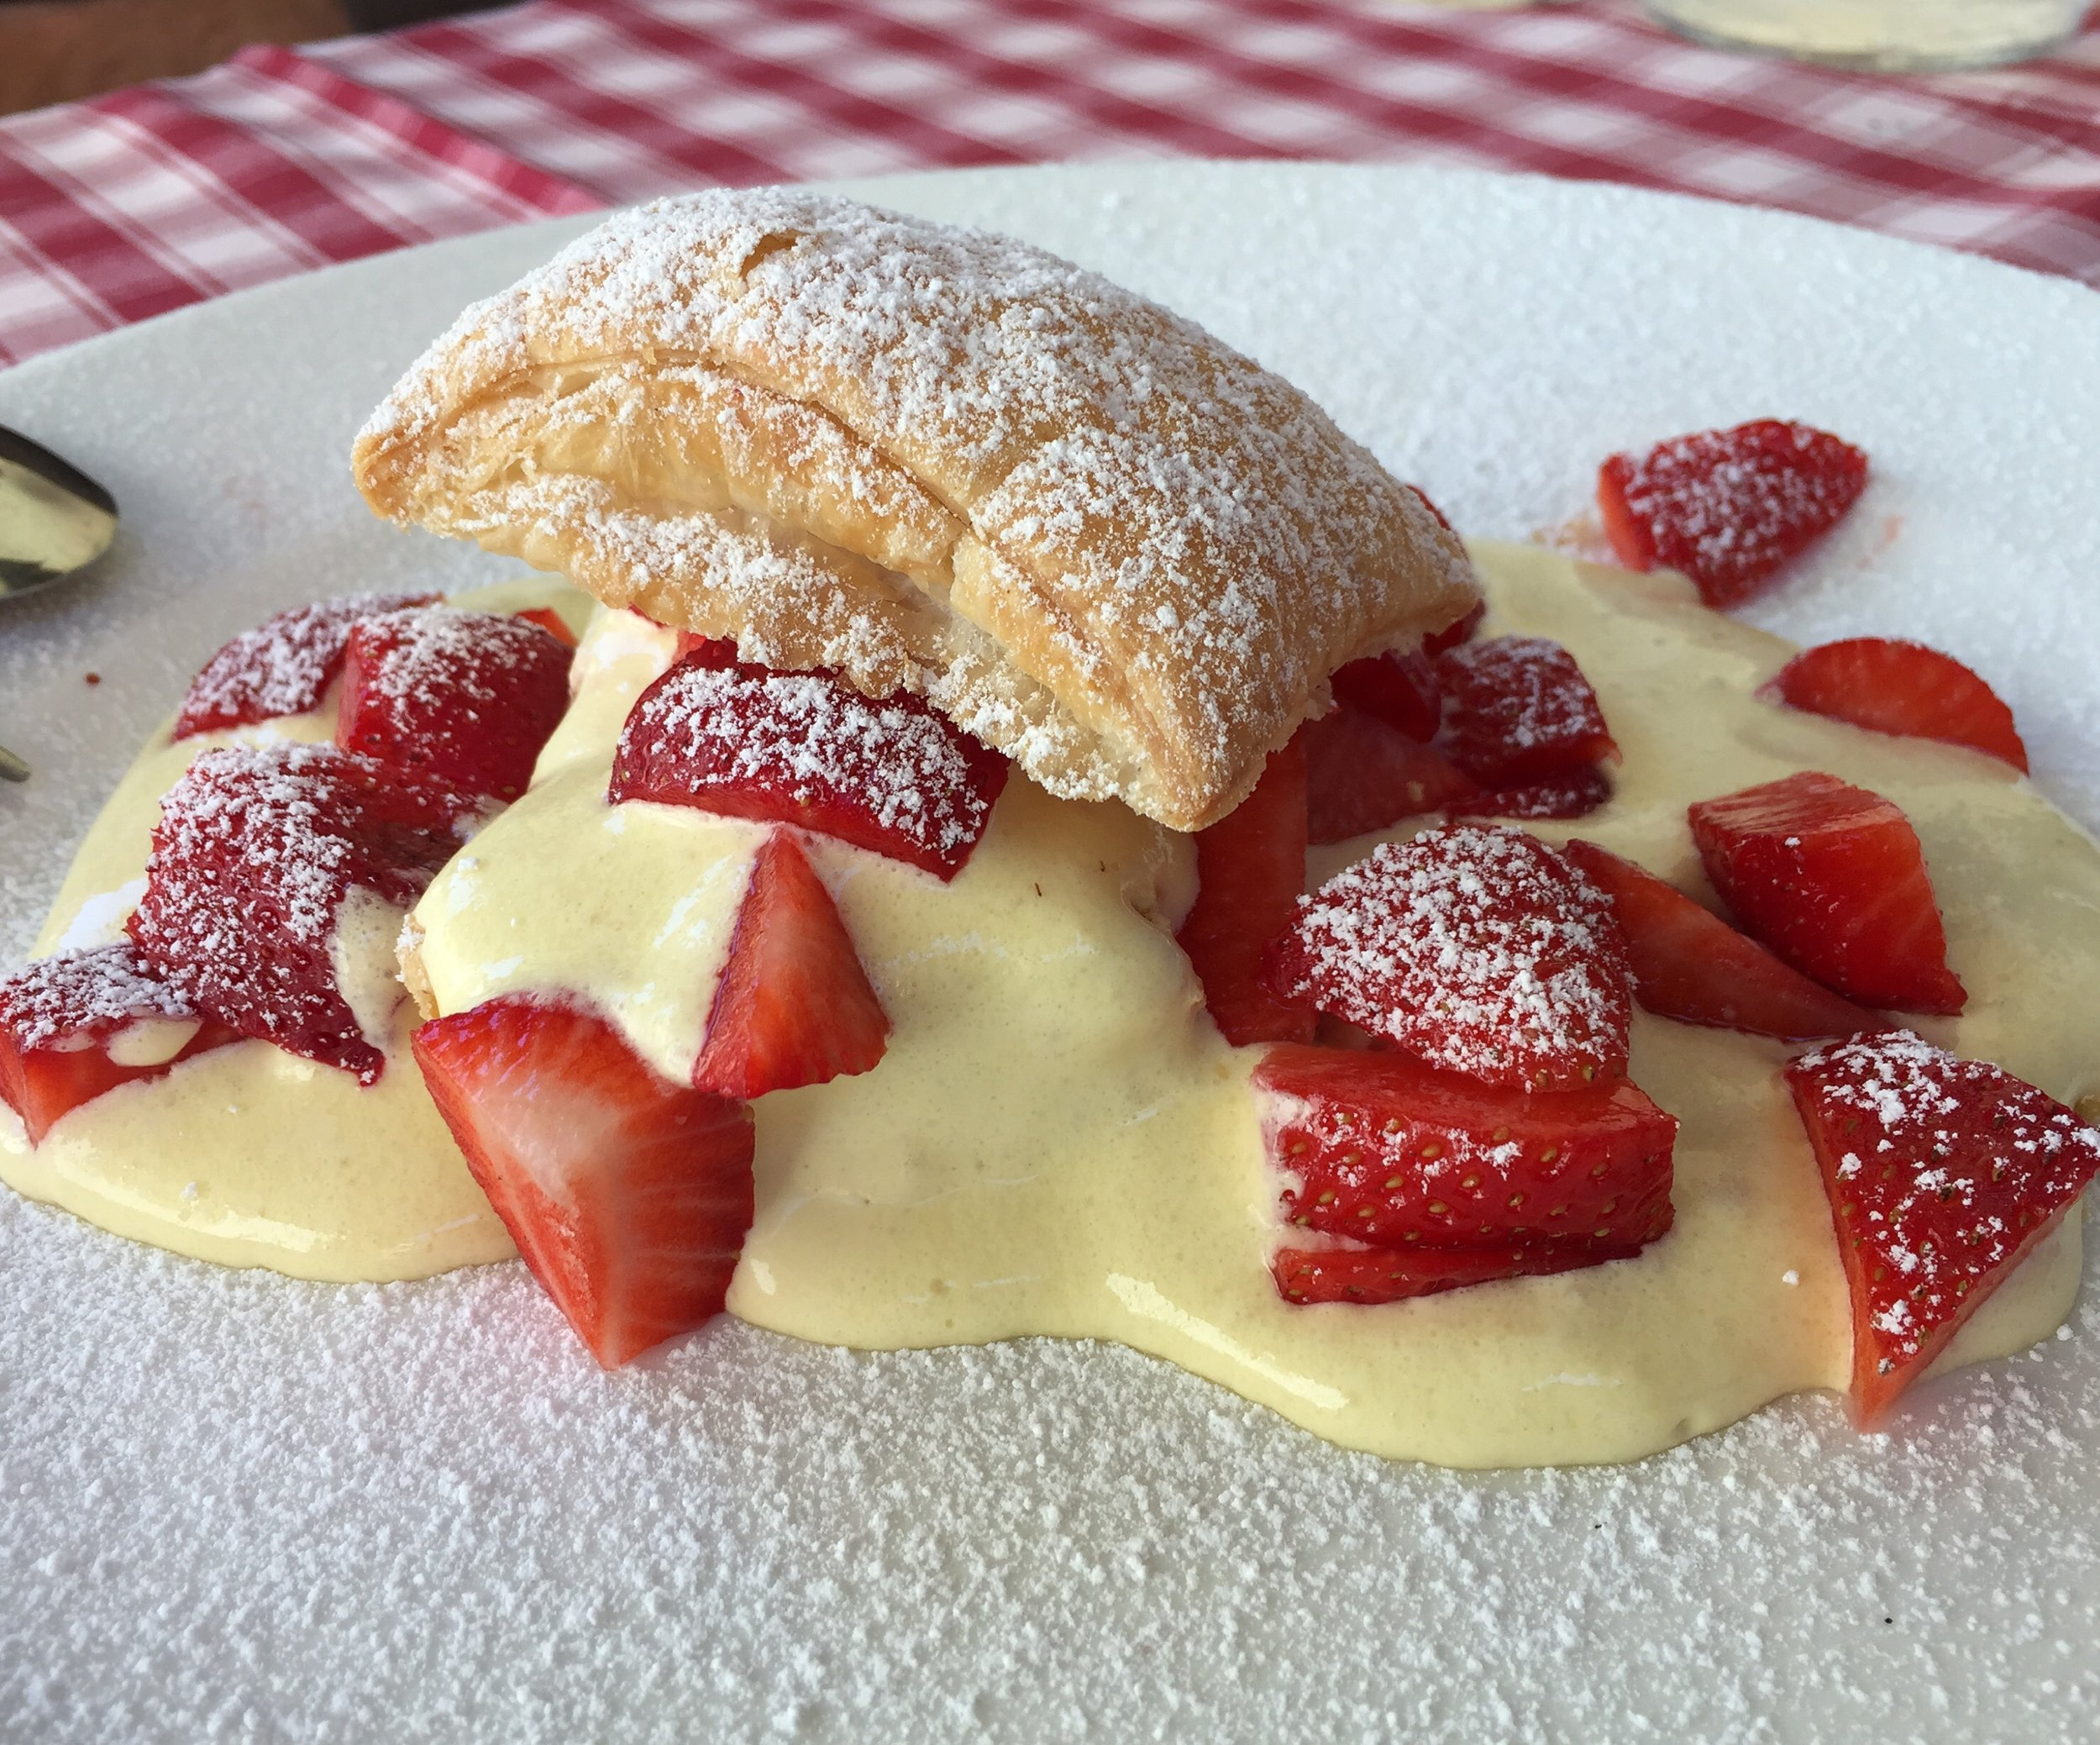 Fresh strawberries and cream with pastry at Due Spade.